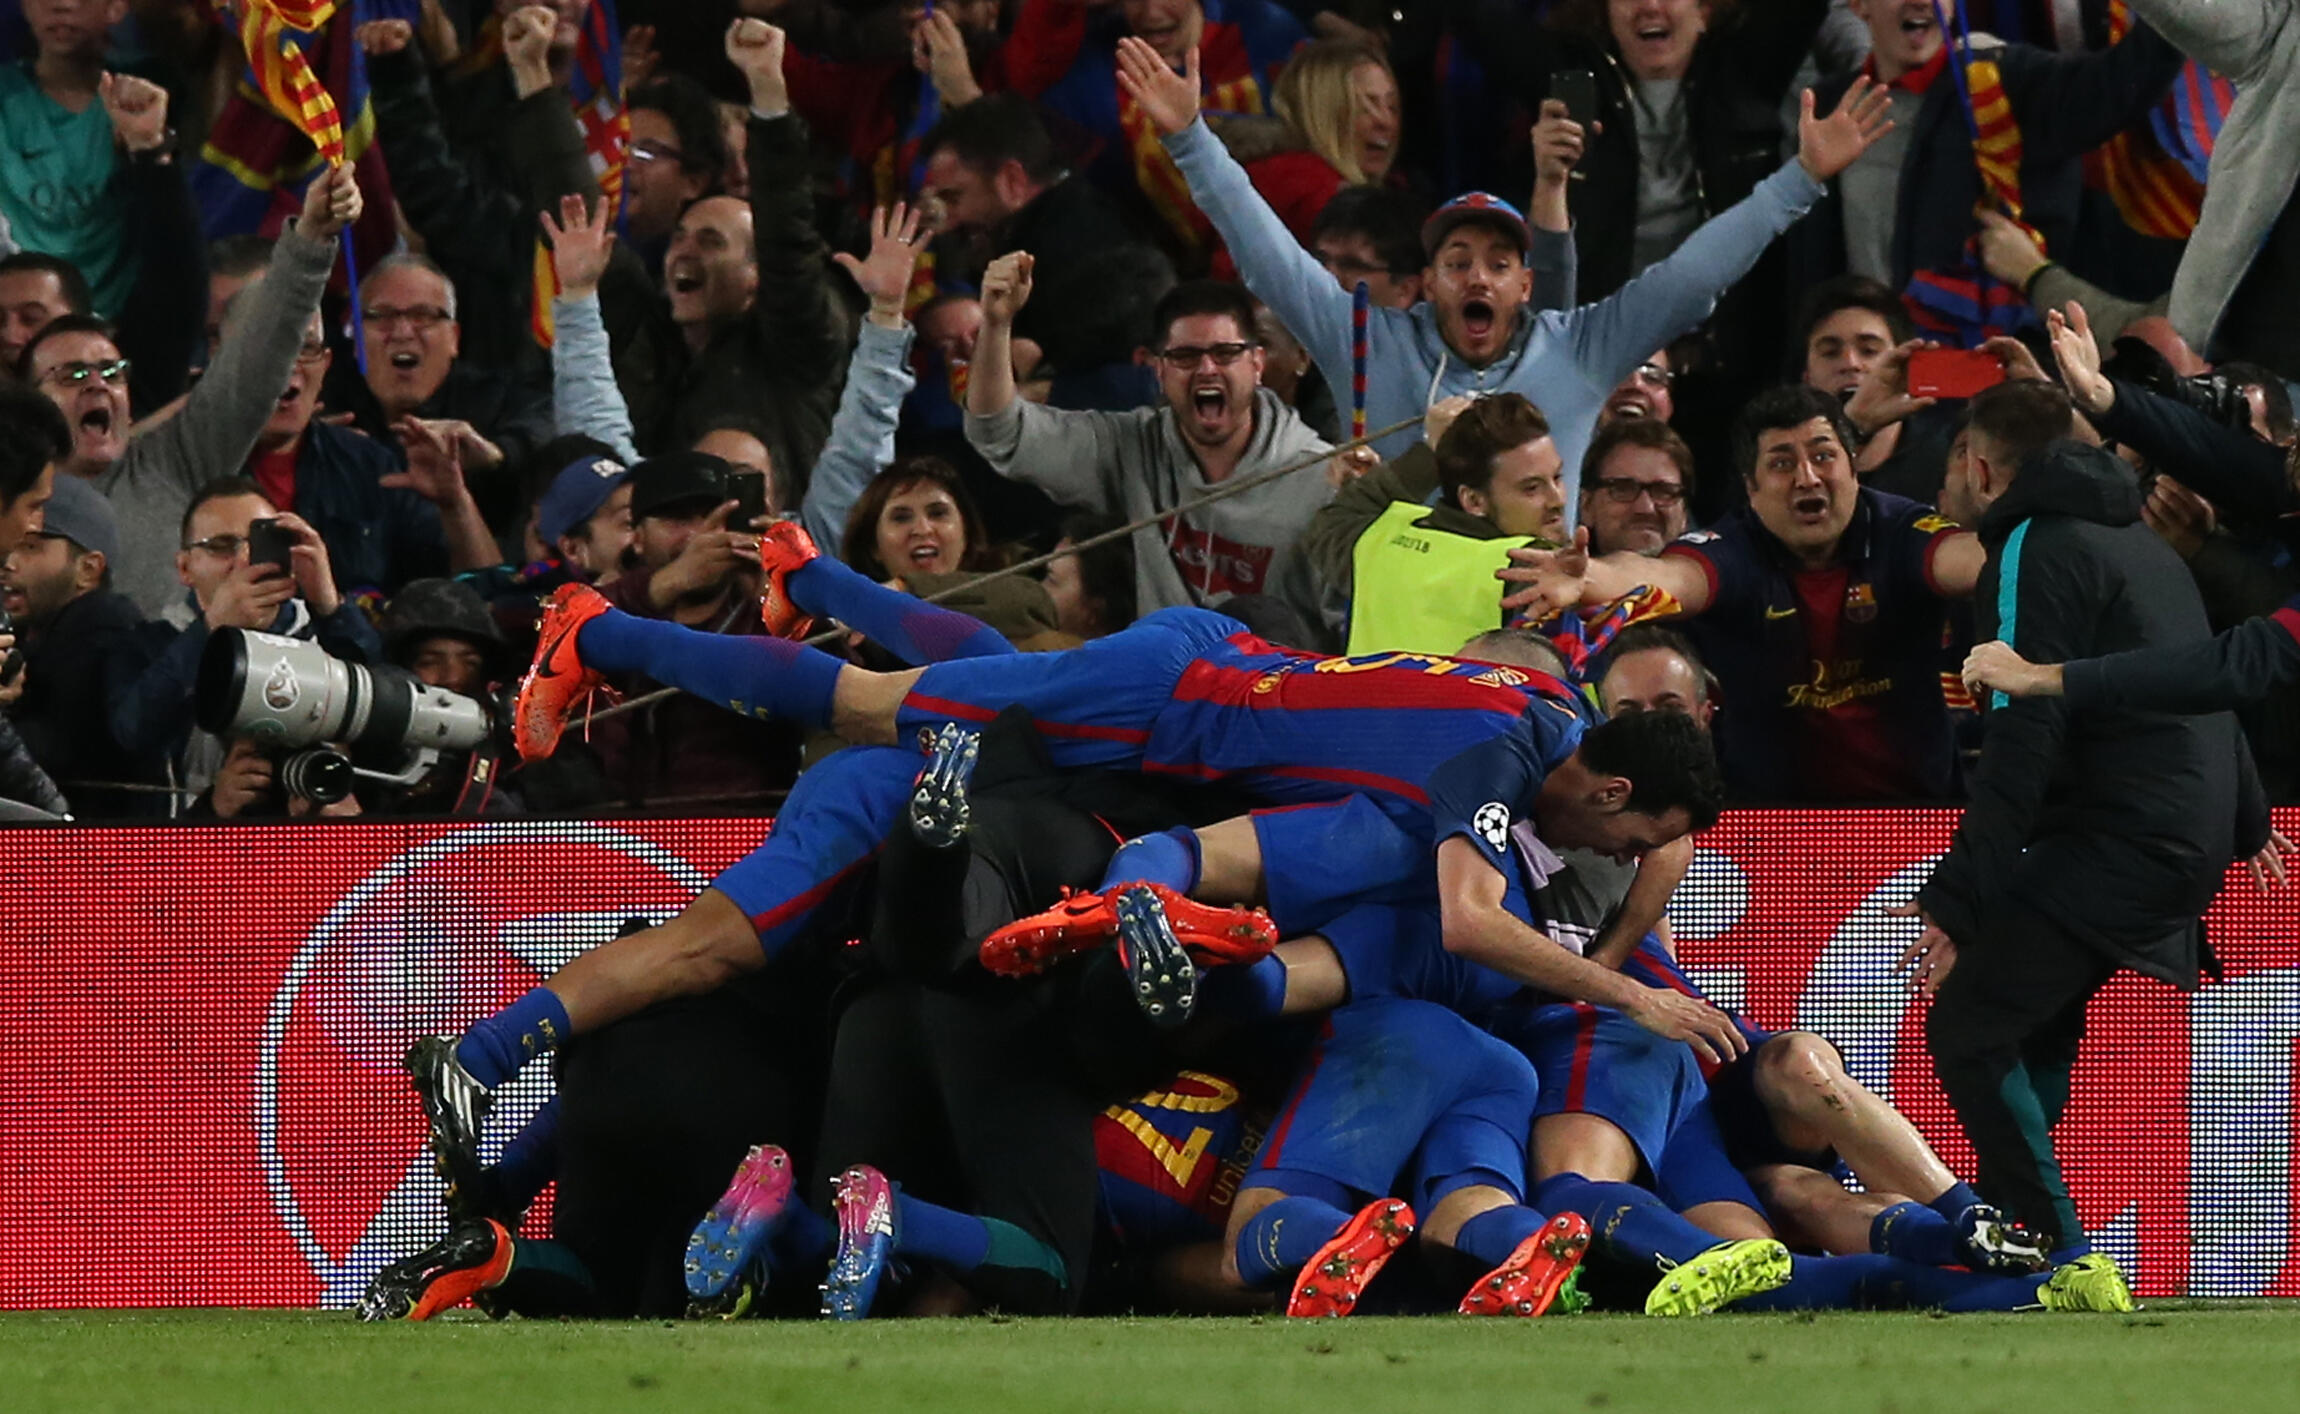 Barcelona's Sergi Roberto celebrates scoring their sixth goal with team mates in the Nou Camp, Barcelona, Spain, in March